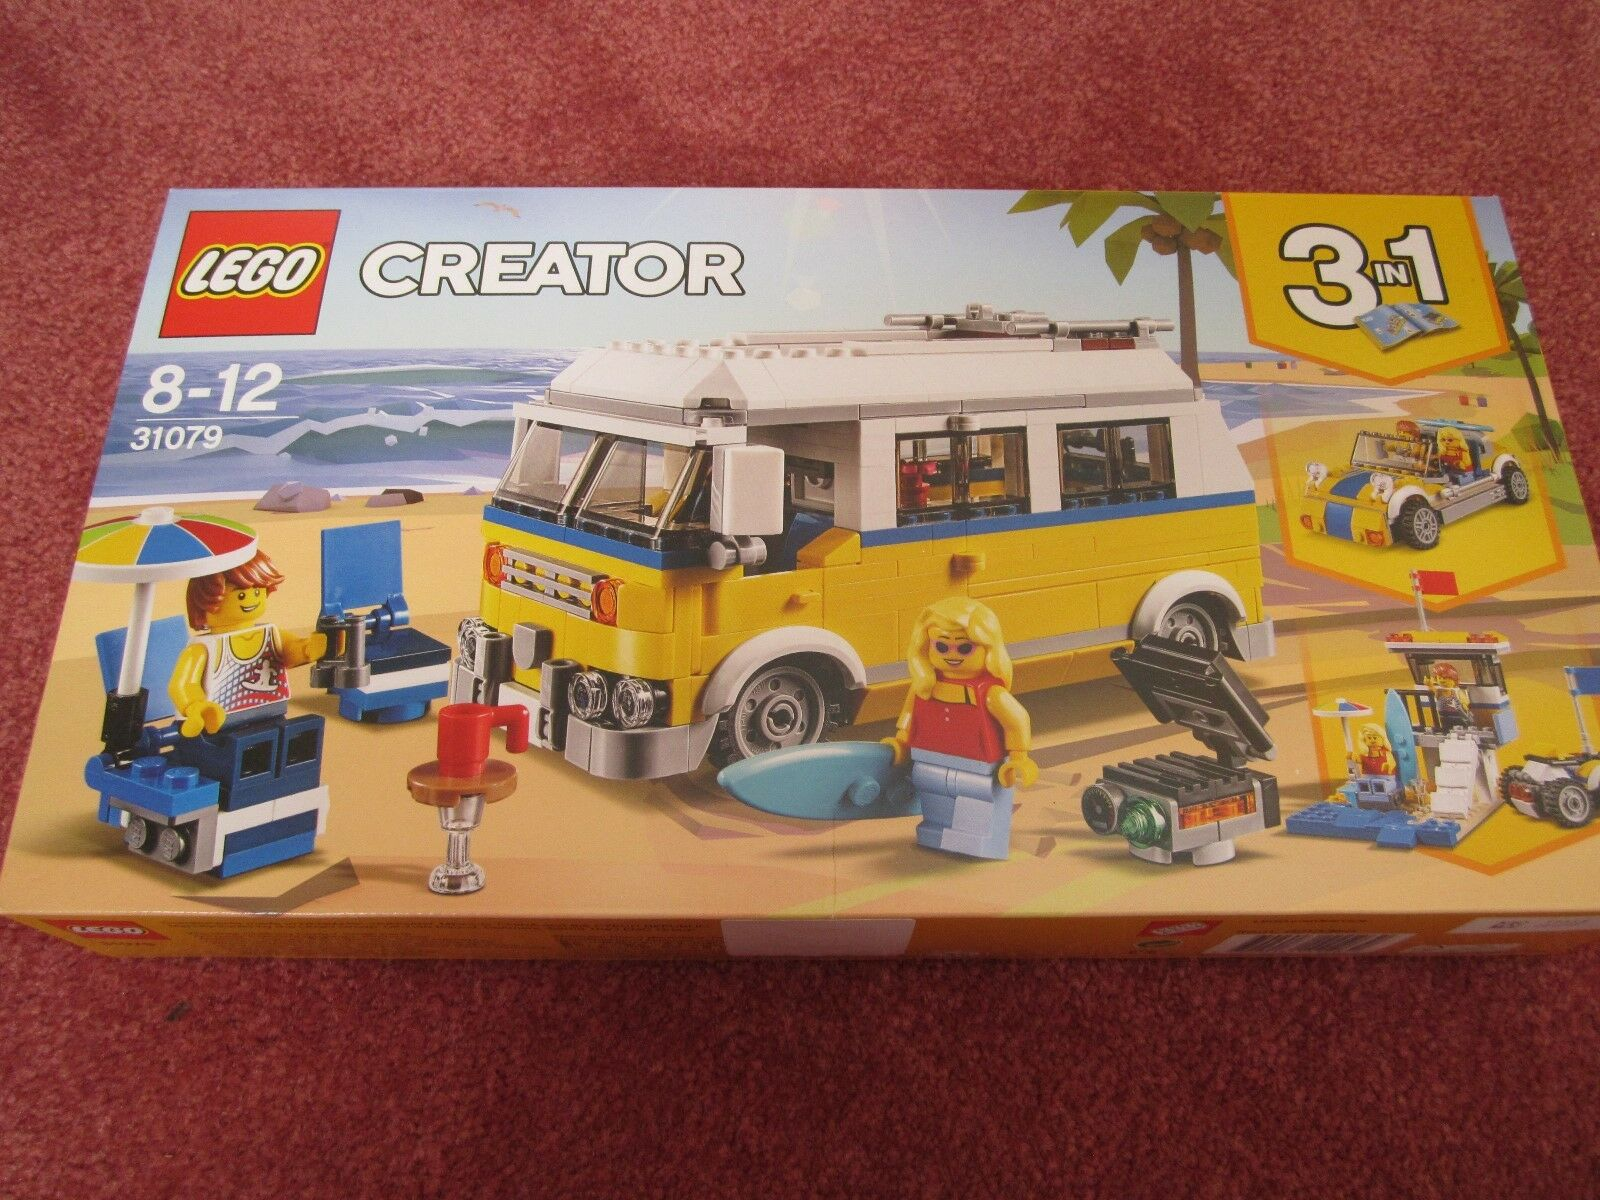 LEGO Creator 3 in 1 Sunshine Surfer Van 31079 - NEW BOXED SEALED